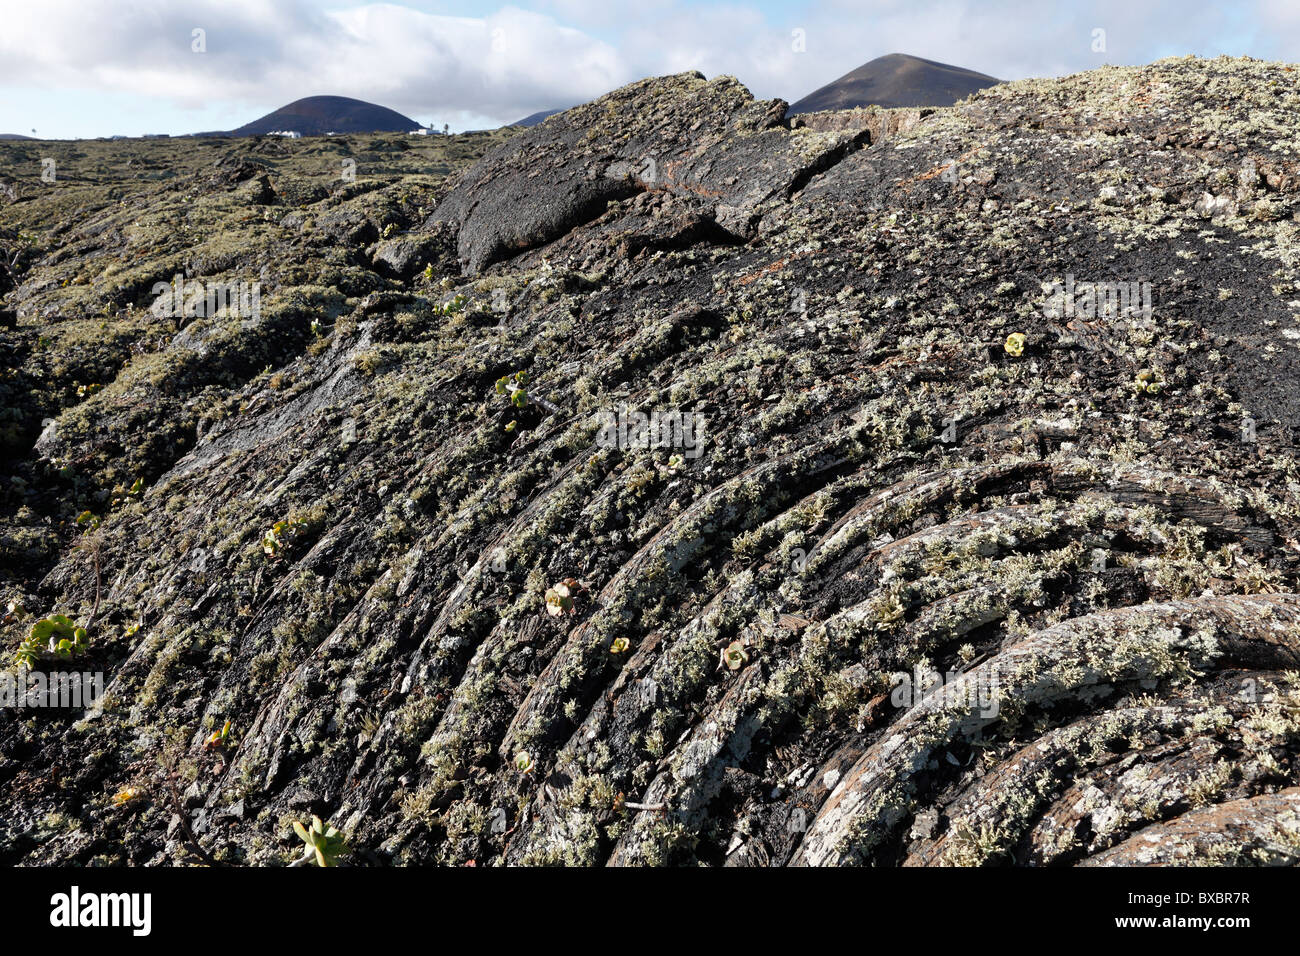 Ropy lava with lichens, Lanzarote, Canary Islands, Spain, Europe - Stock Image